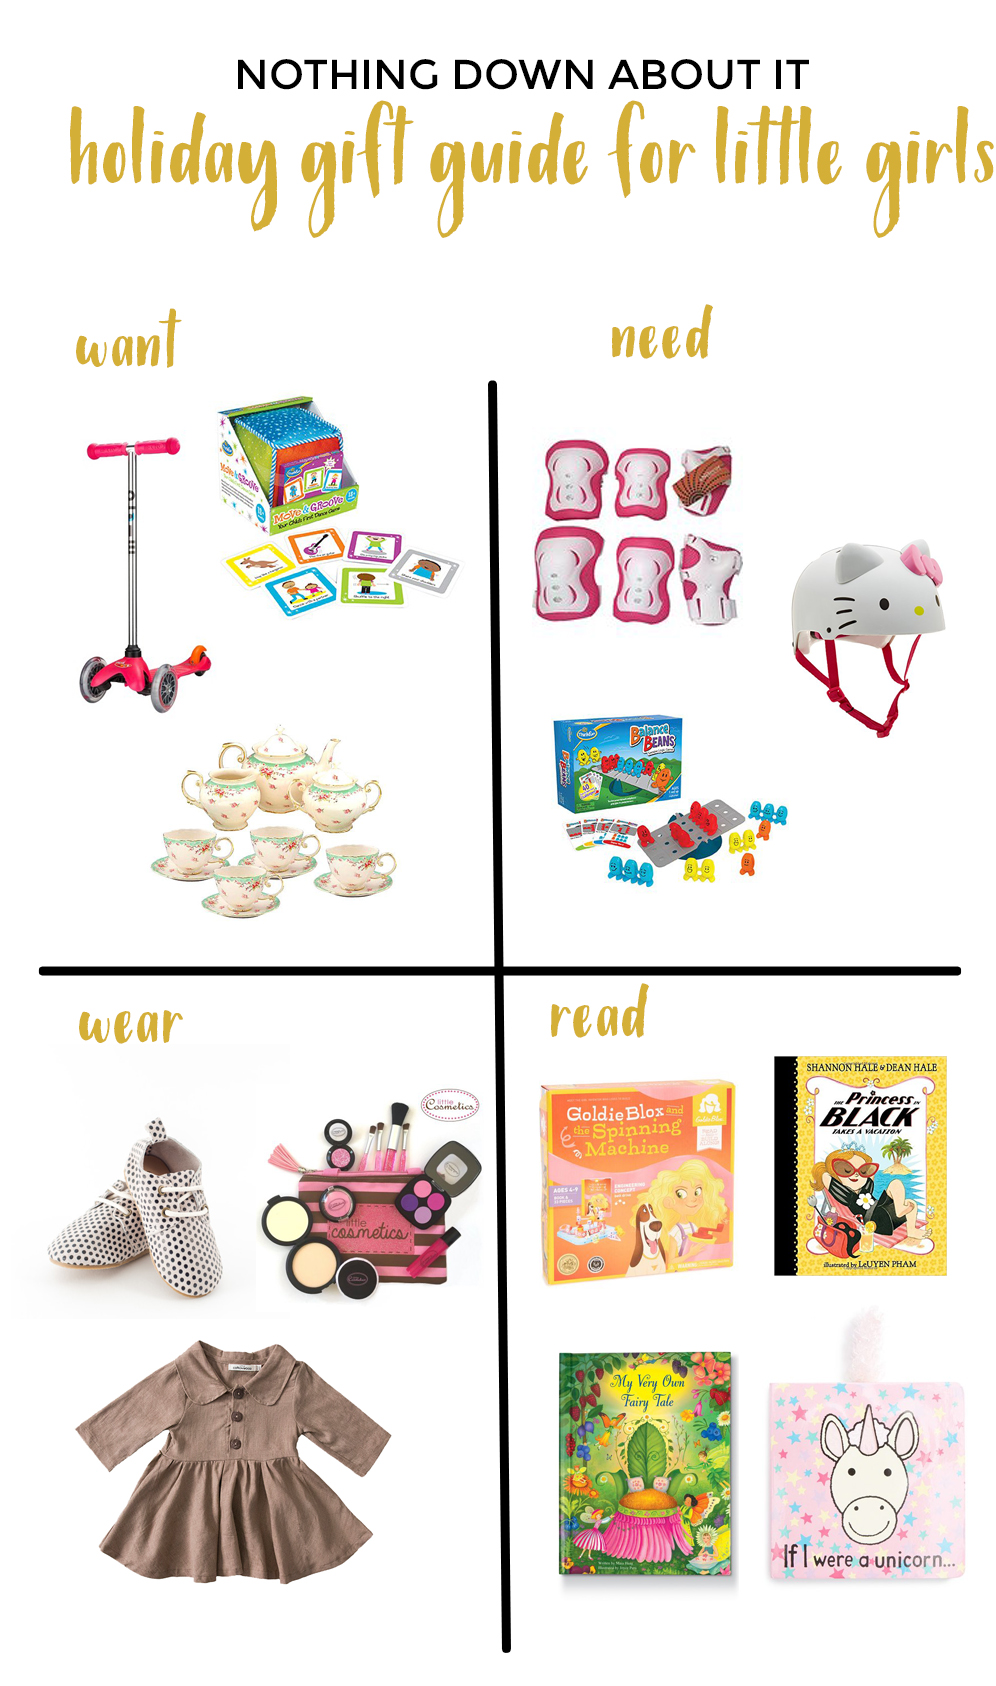 holiday Christmas gift guide for little girls